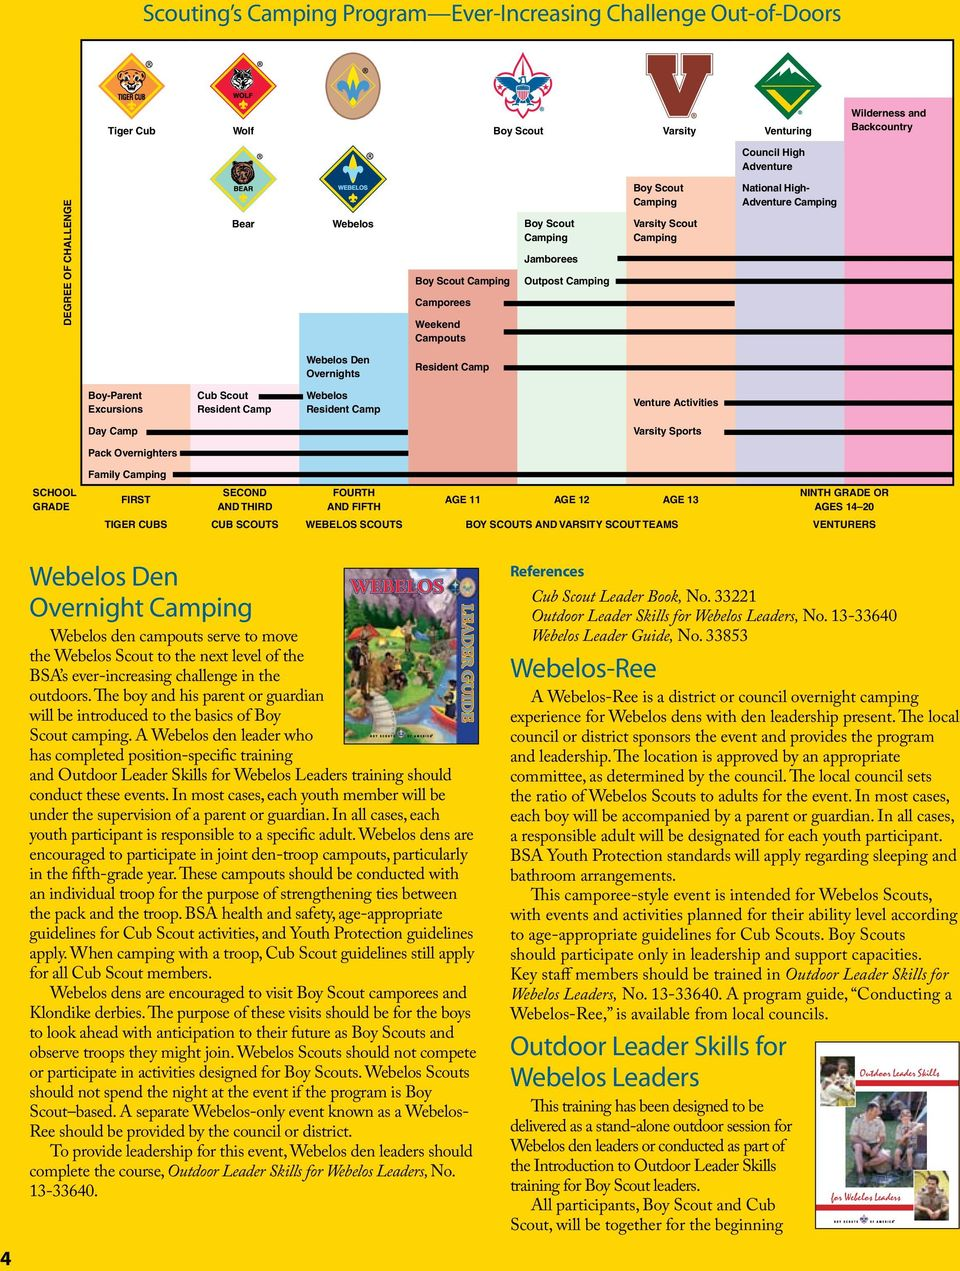 Overnights Boy-Parent Excursions Cub Scout Webelos Venture Activities Day Camp Varsity Sports Pack Overnighters SCHOOL GRADE Family Camping FIRST SECOND AND THIRD FOURTH AND FIFTH AGE 11 AGE 12 AGE